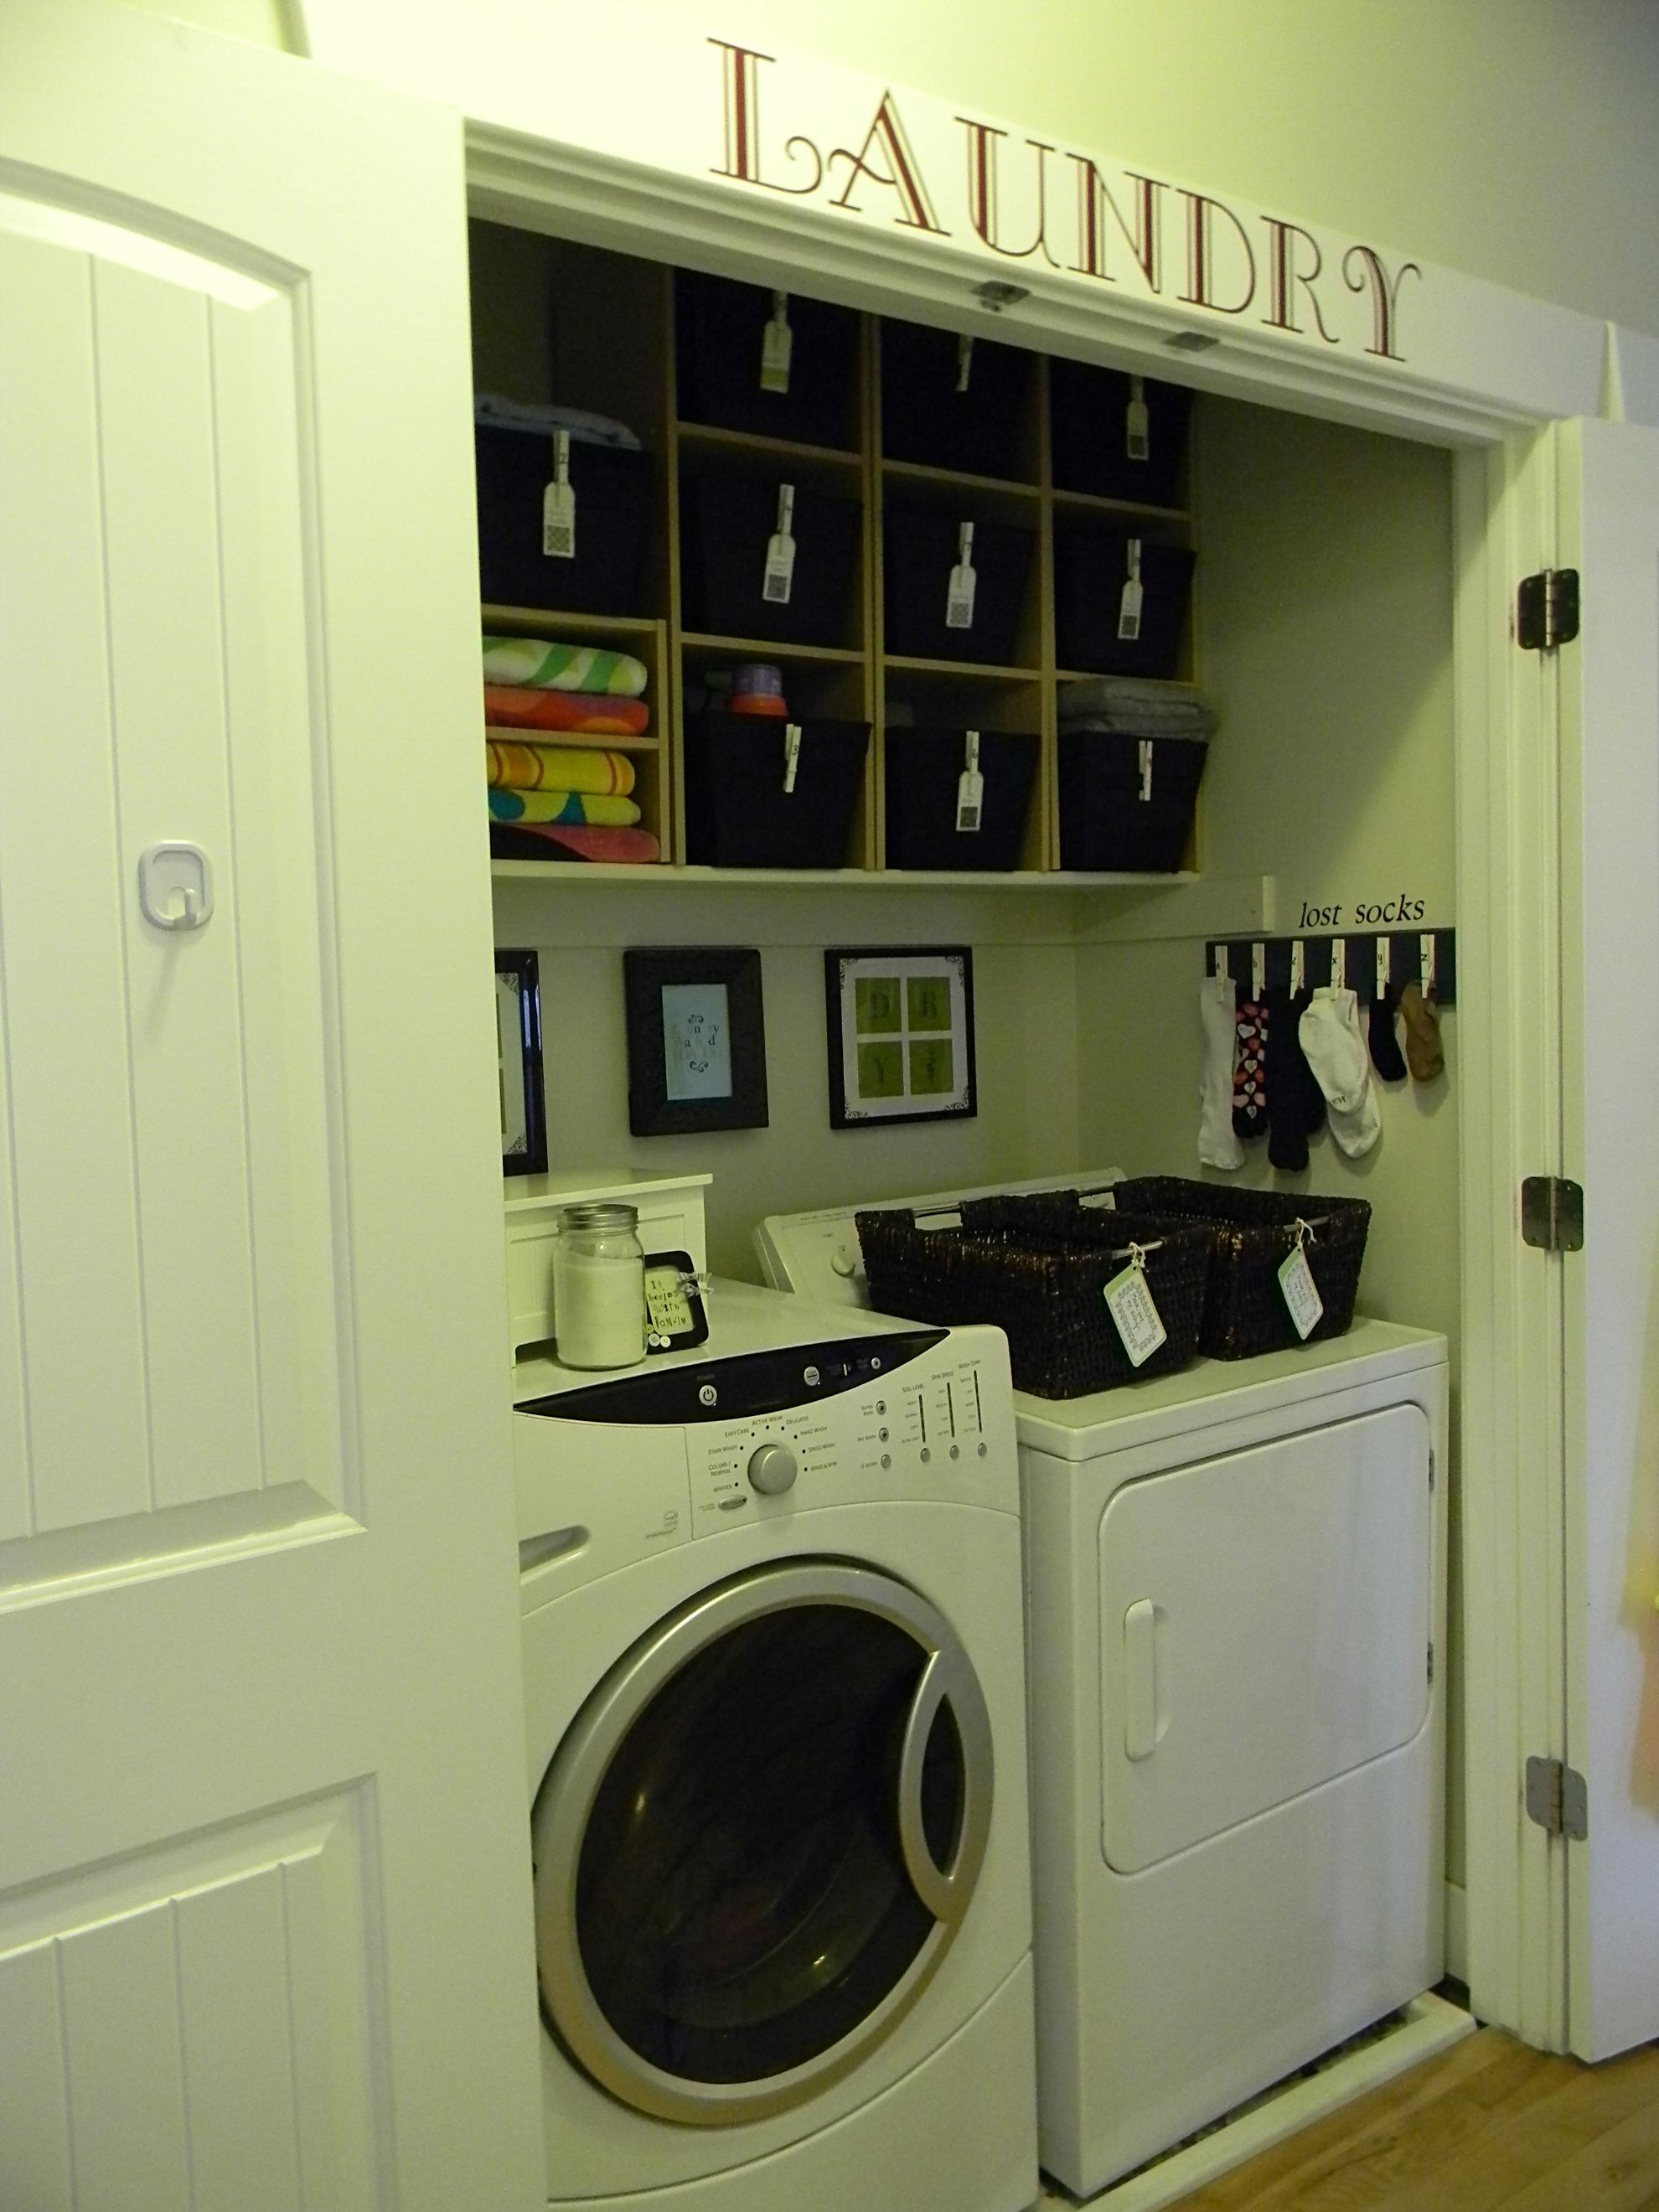 Laundry Room Revisited - Organize and Decorate Everything